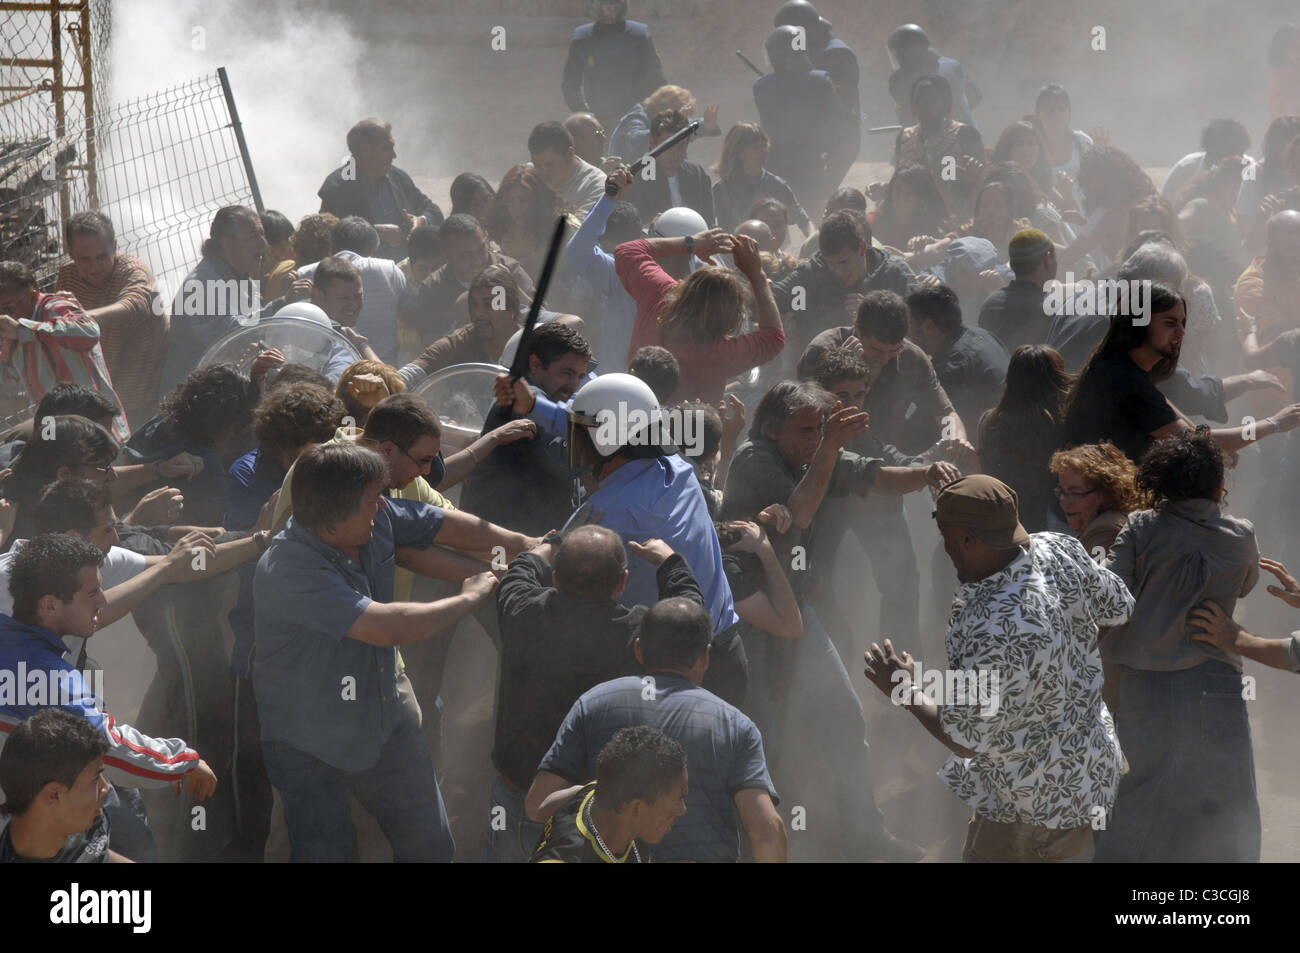 RIOT CELL 211 (2009) - Stock Image